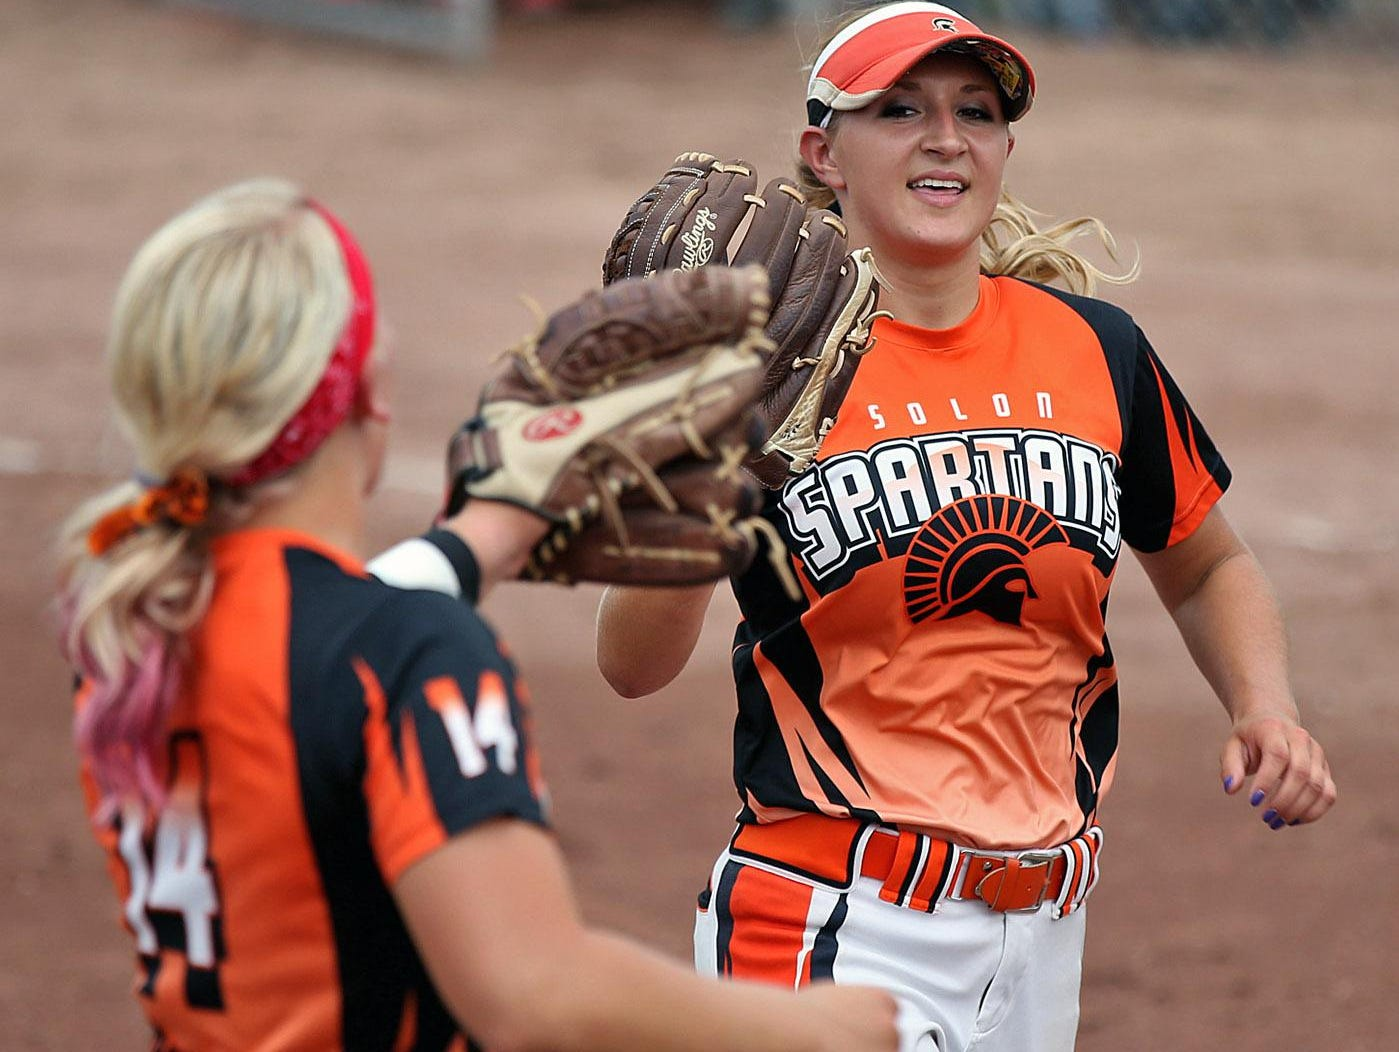 Solon senior Emily Ira (right) was a first-team selection in the WAMAC East Division as a pitcher. Ira is 25-2 on the year with a 0.50 ERA and 338 strikeouts, which ranks first in all of Class 3A, in 168 innings pitched.